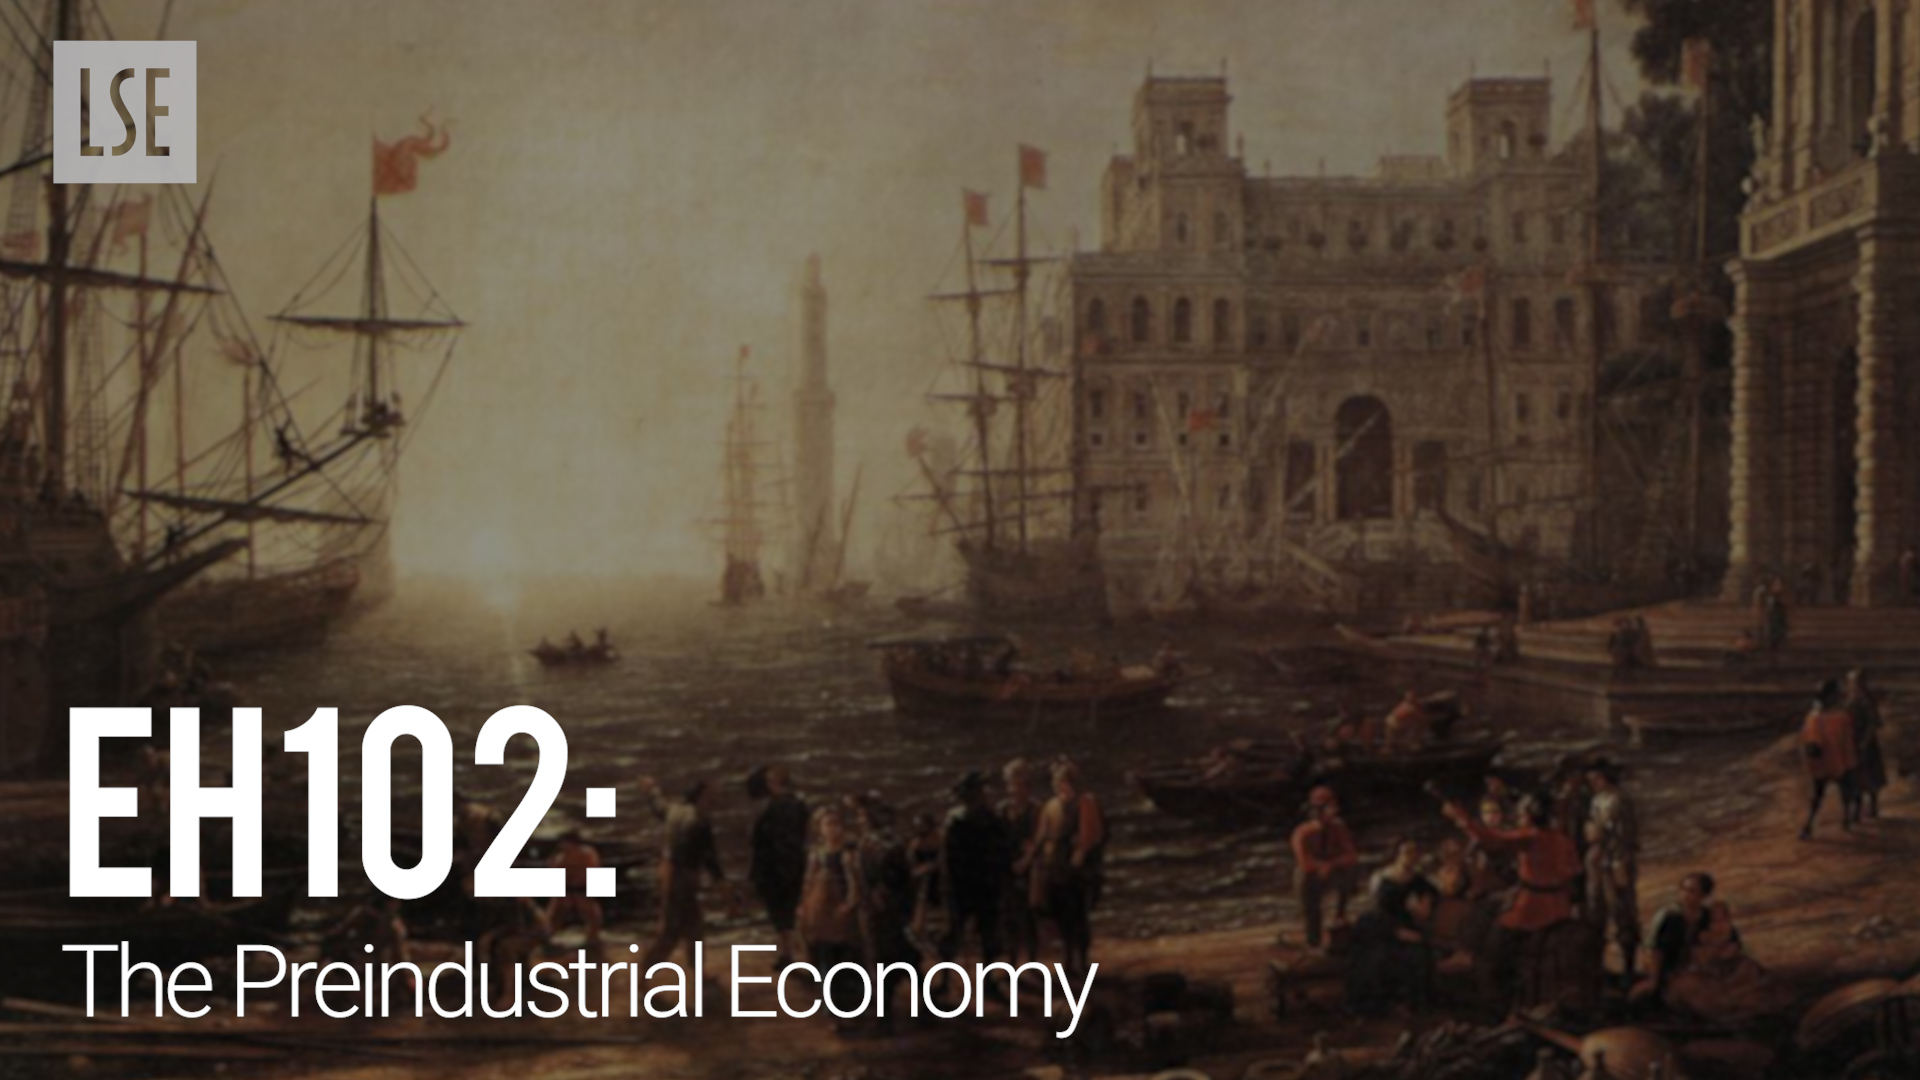 EH102 Pre-industrial Economic History, by Professor Oliver Volckart